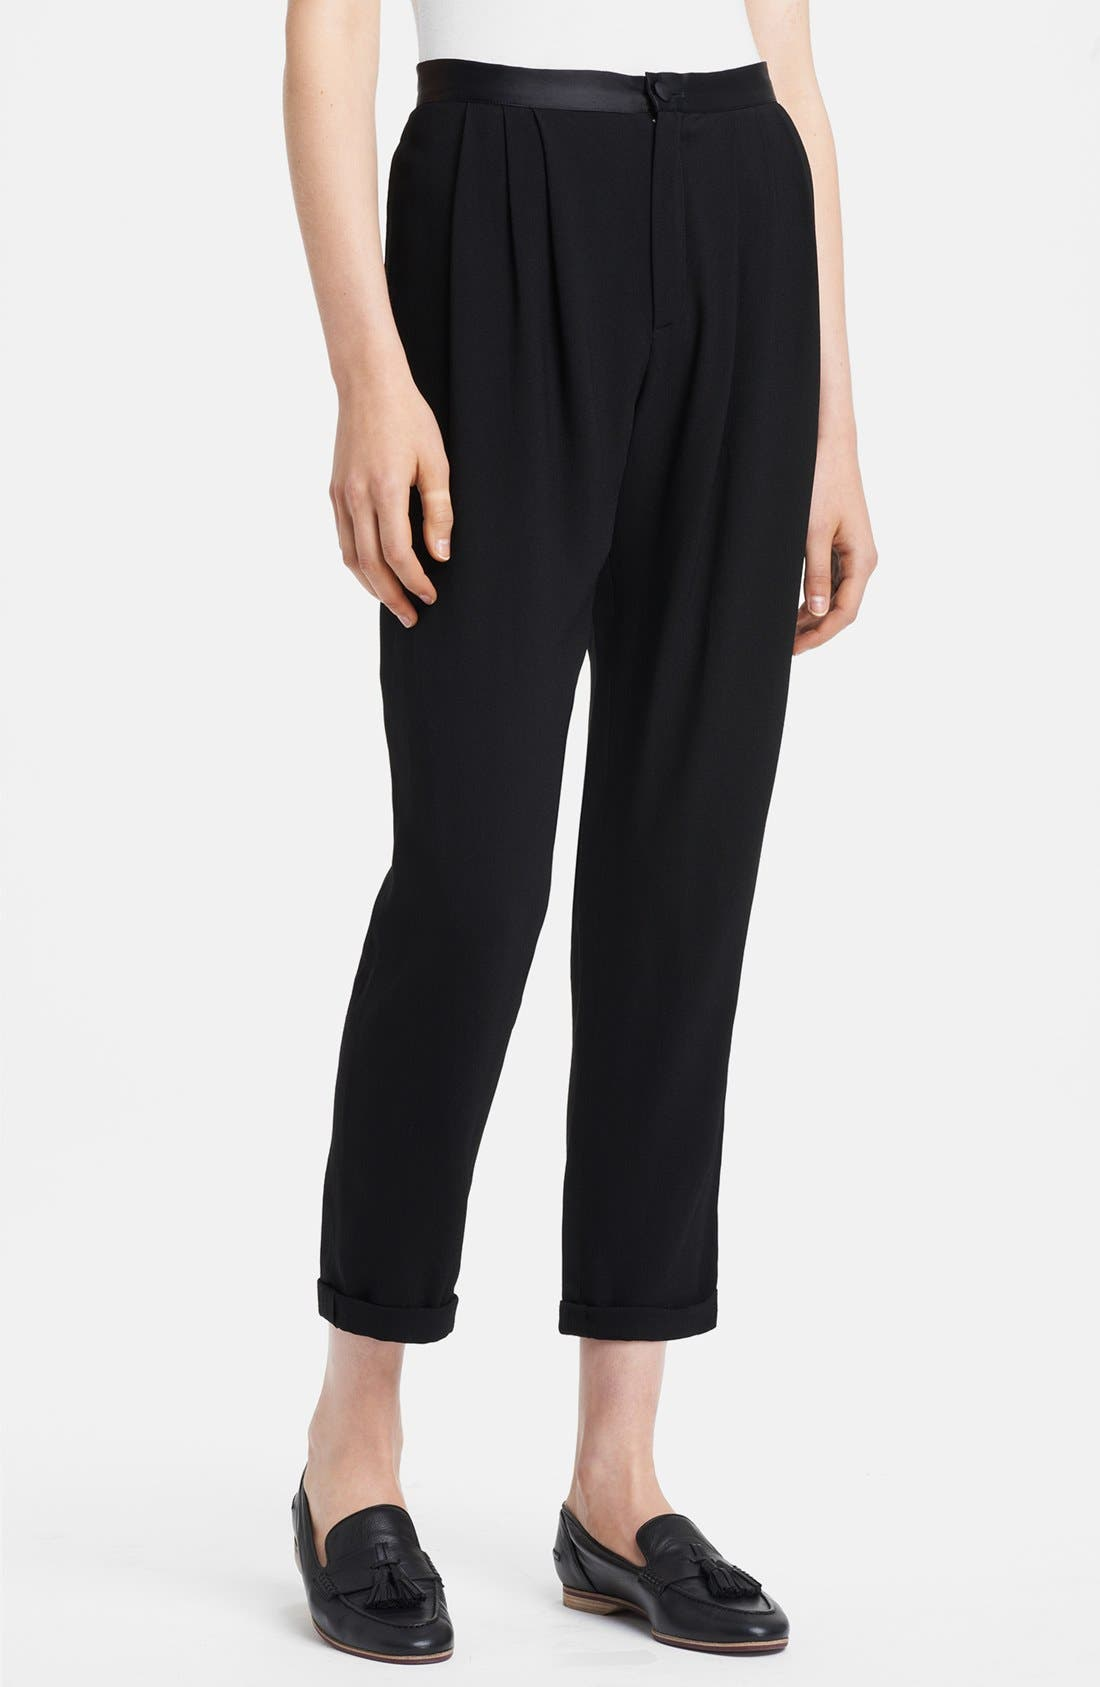 Main Image - Band of Outsiders 'Amie' Cady Crop Pants